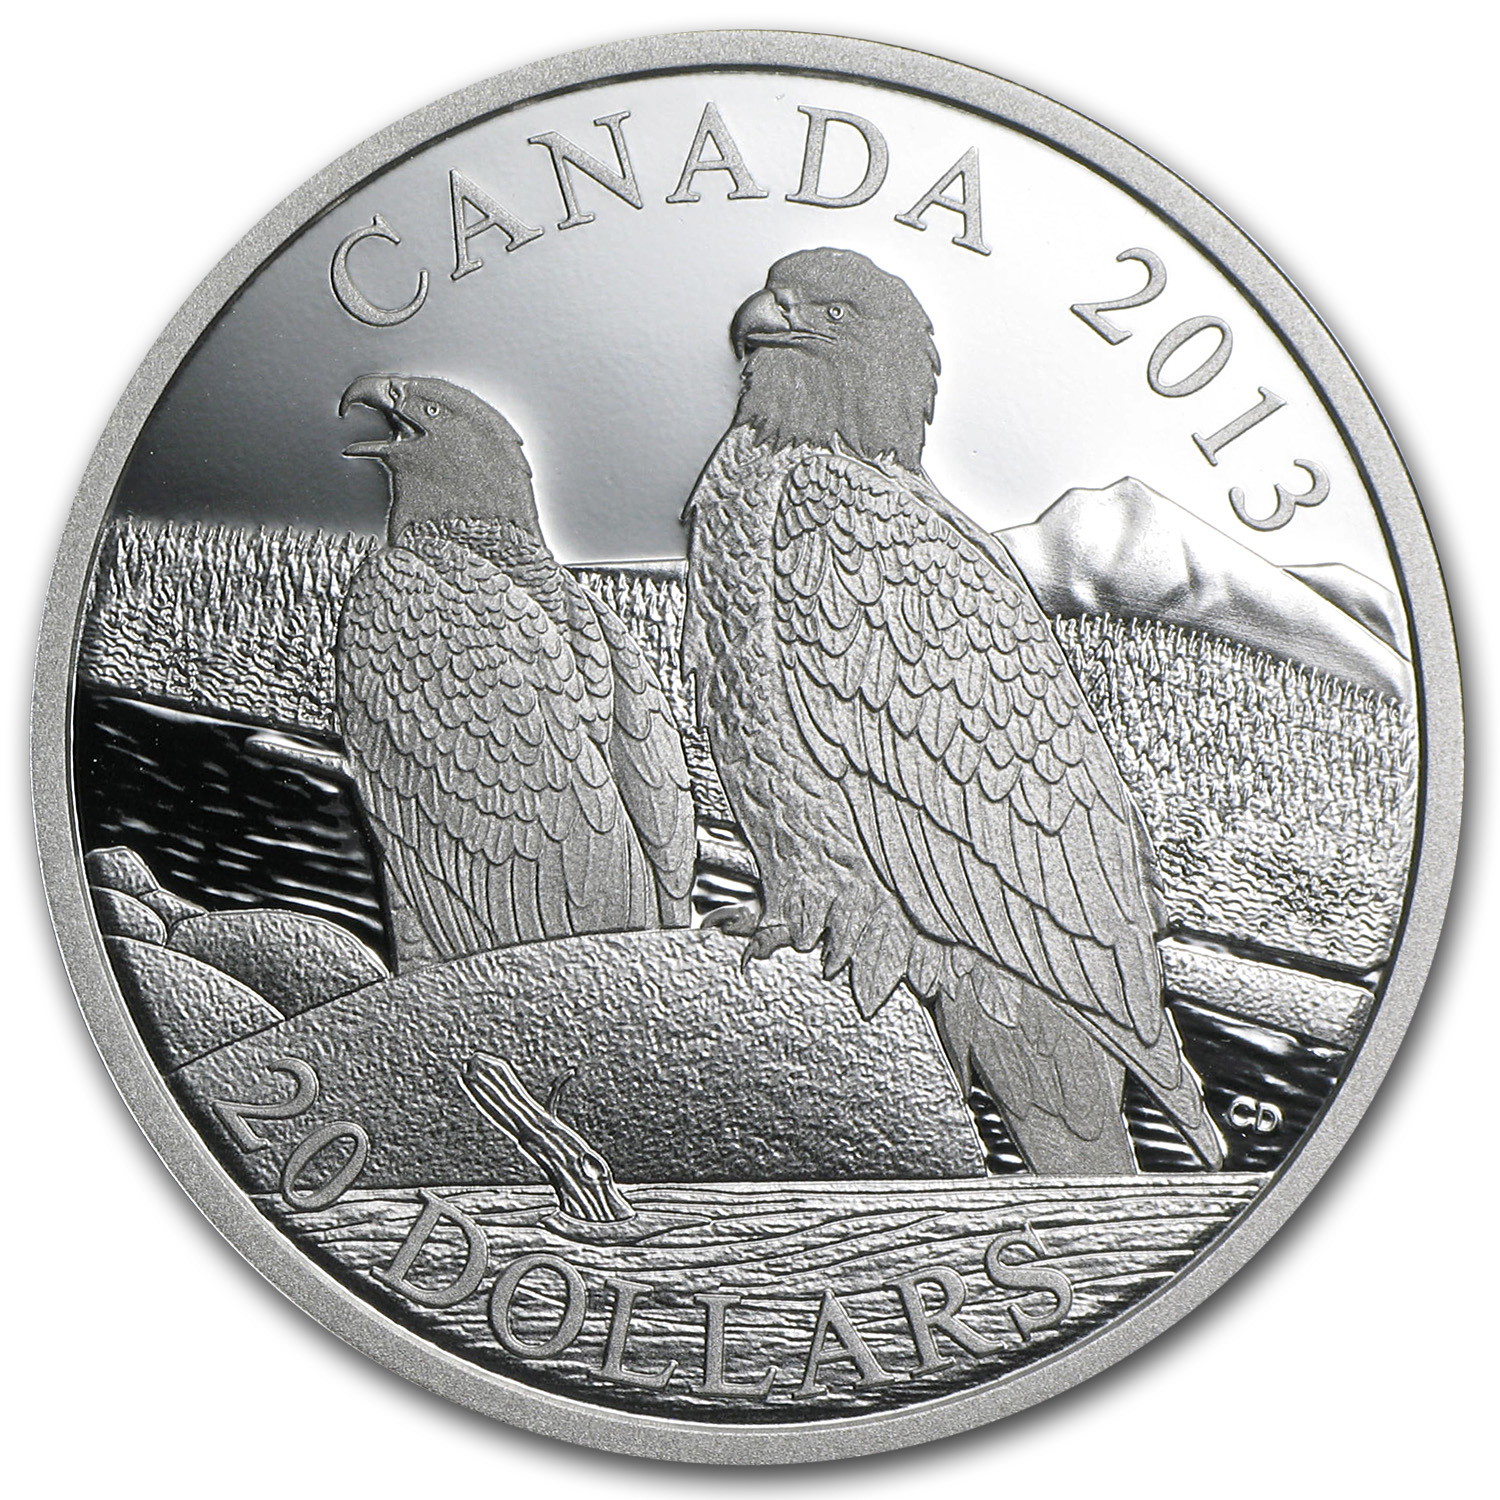 2013 1 oz Silver Canadian $20 - The Bald Eagle - Lifelong Mates